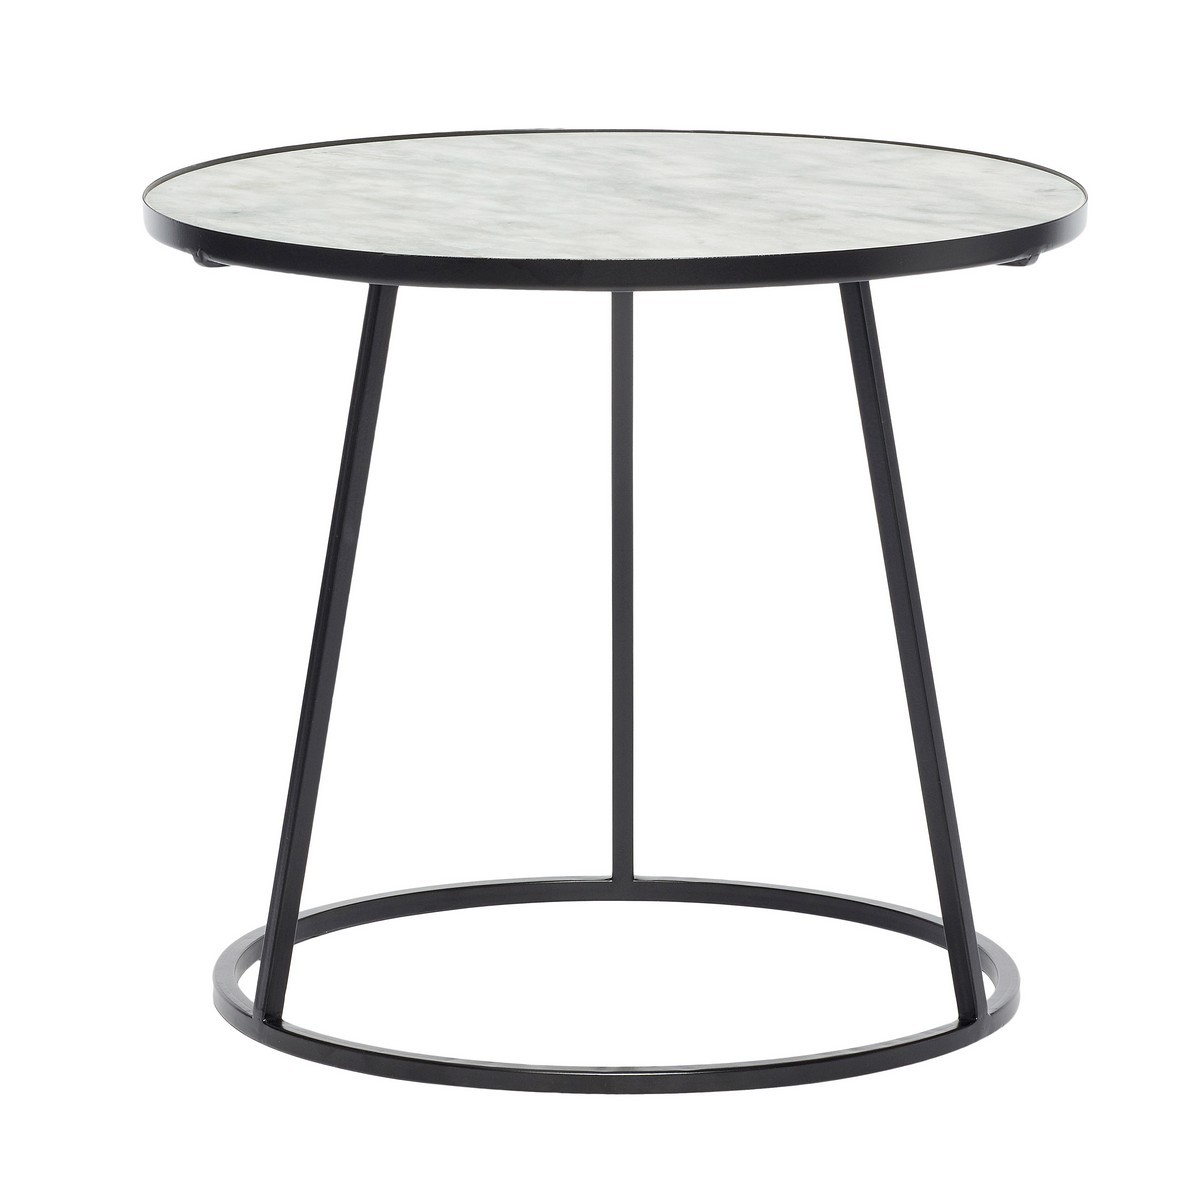 Table Metal Blanc Table Basse Ronde Marbre Blanc Metal Noir Hubsch Kdesign